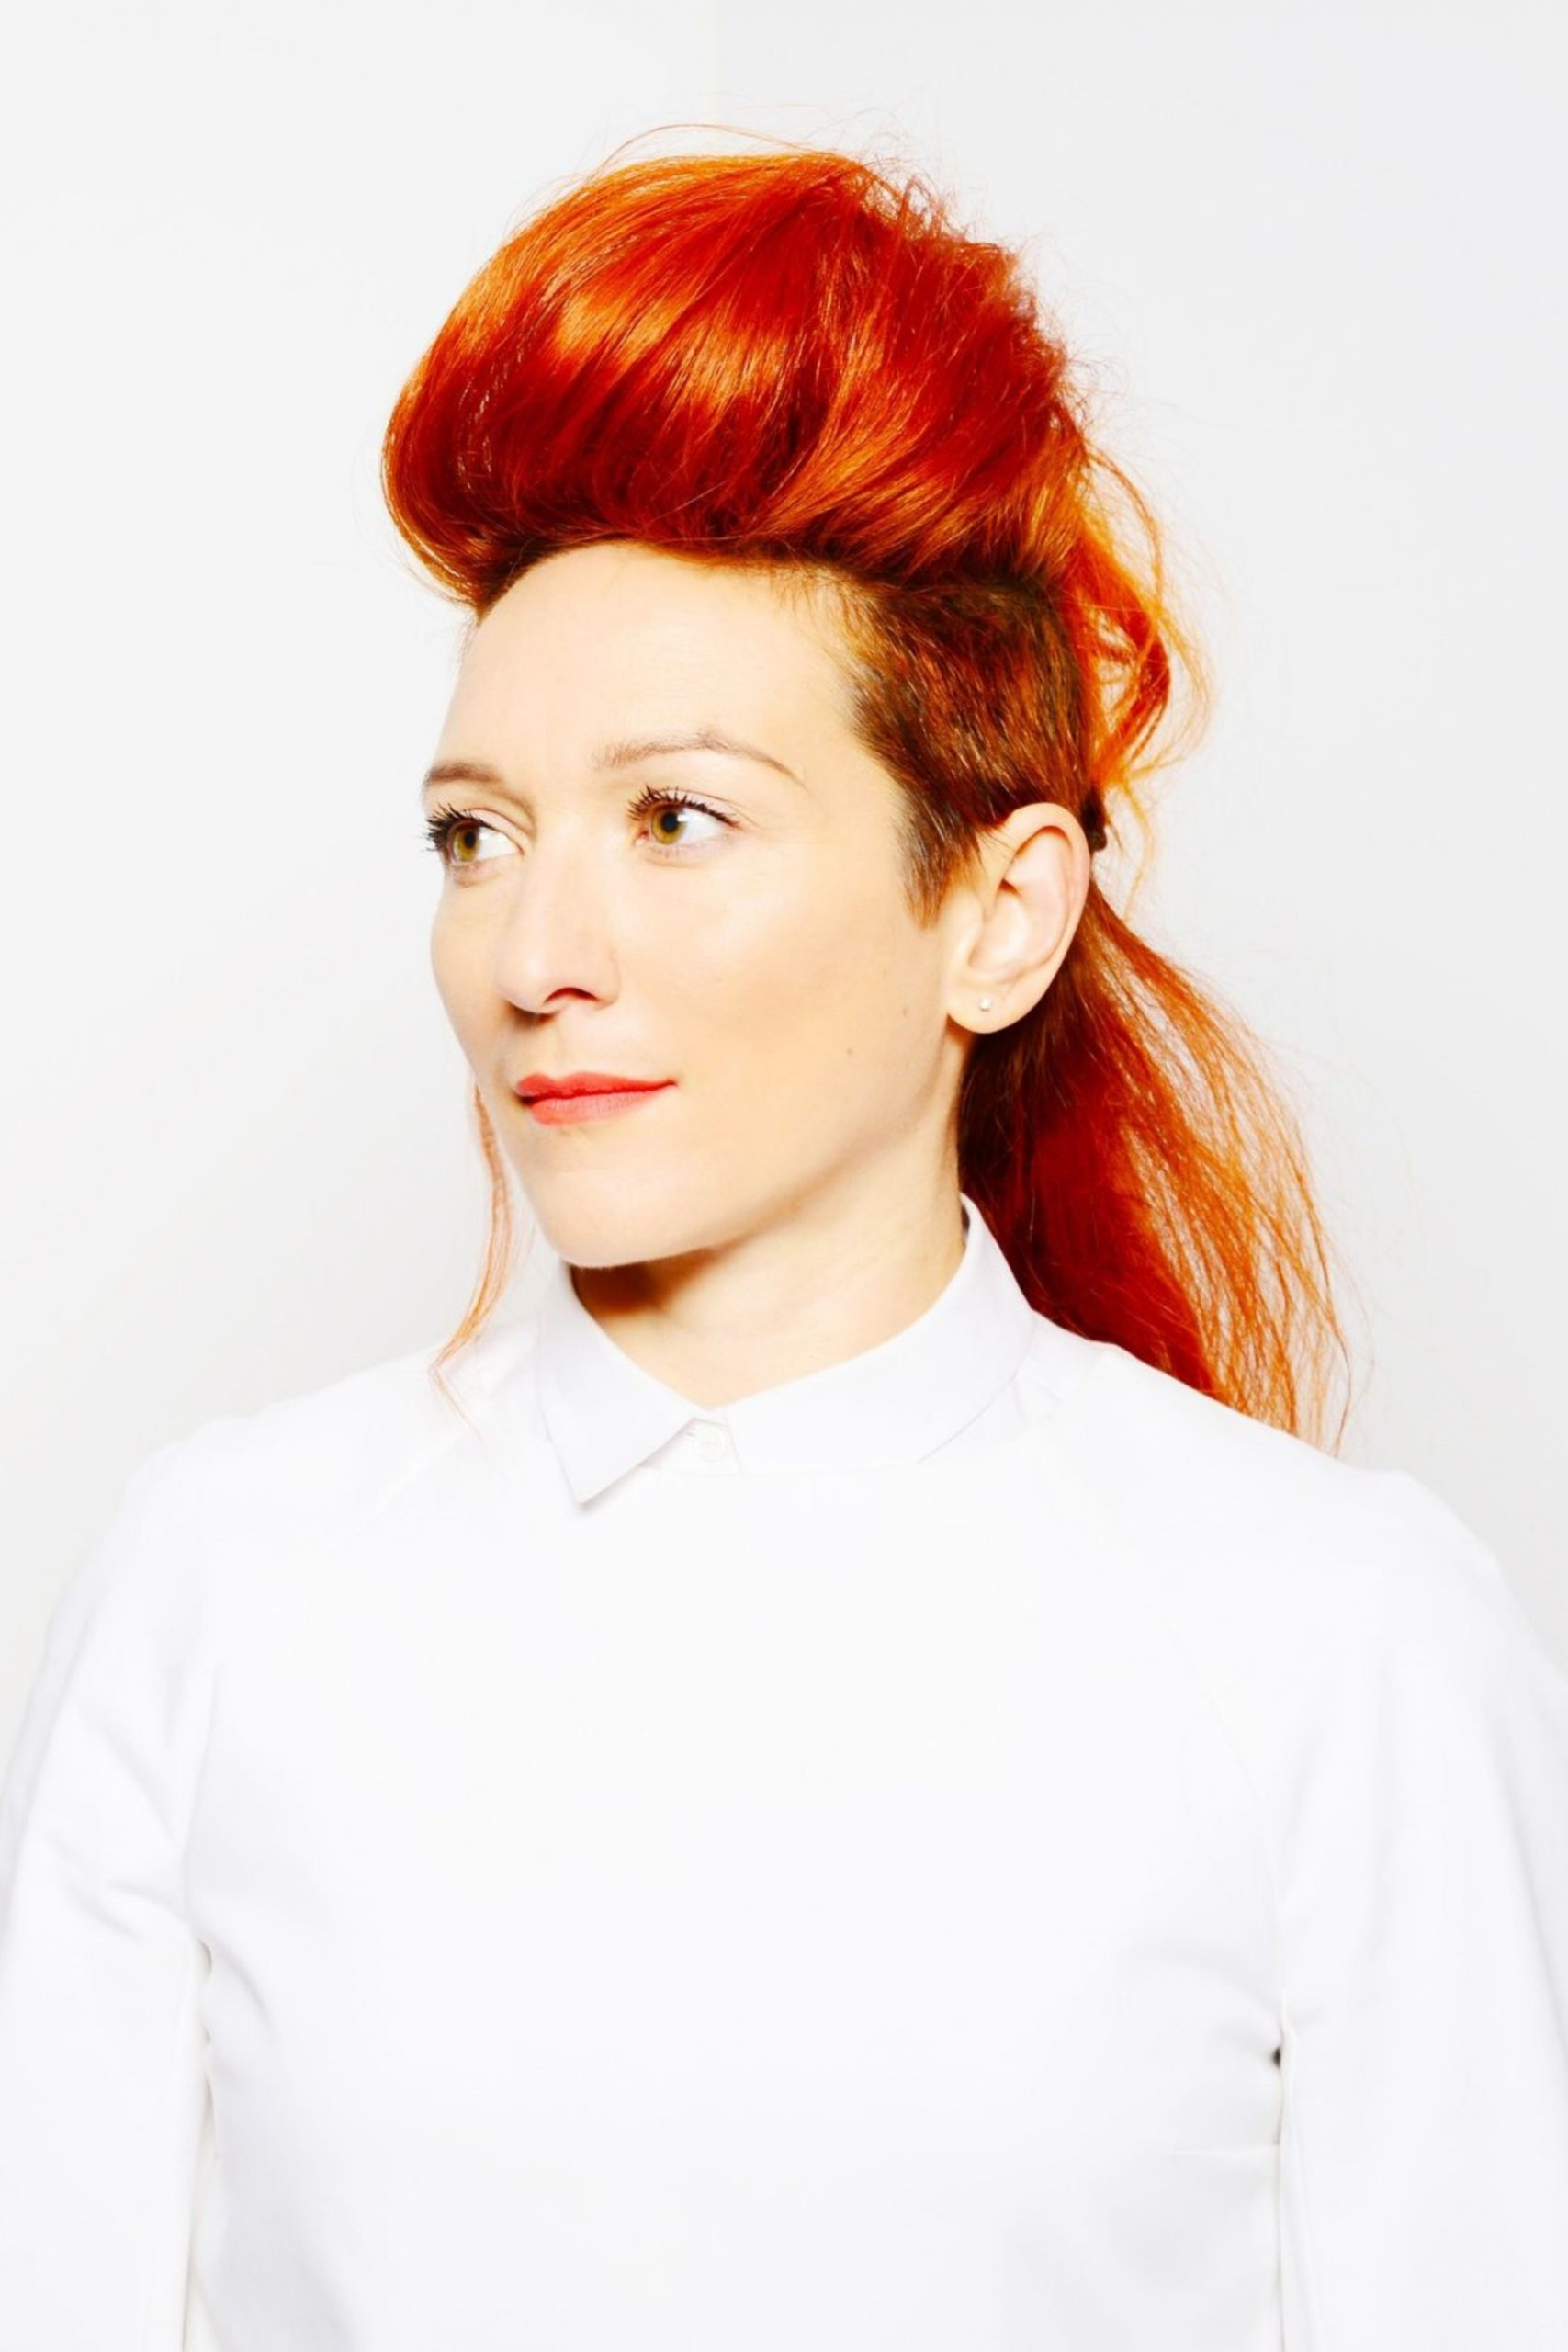 Shara Nova wears a white collared shirt, her bright red hair in a bun.